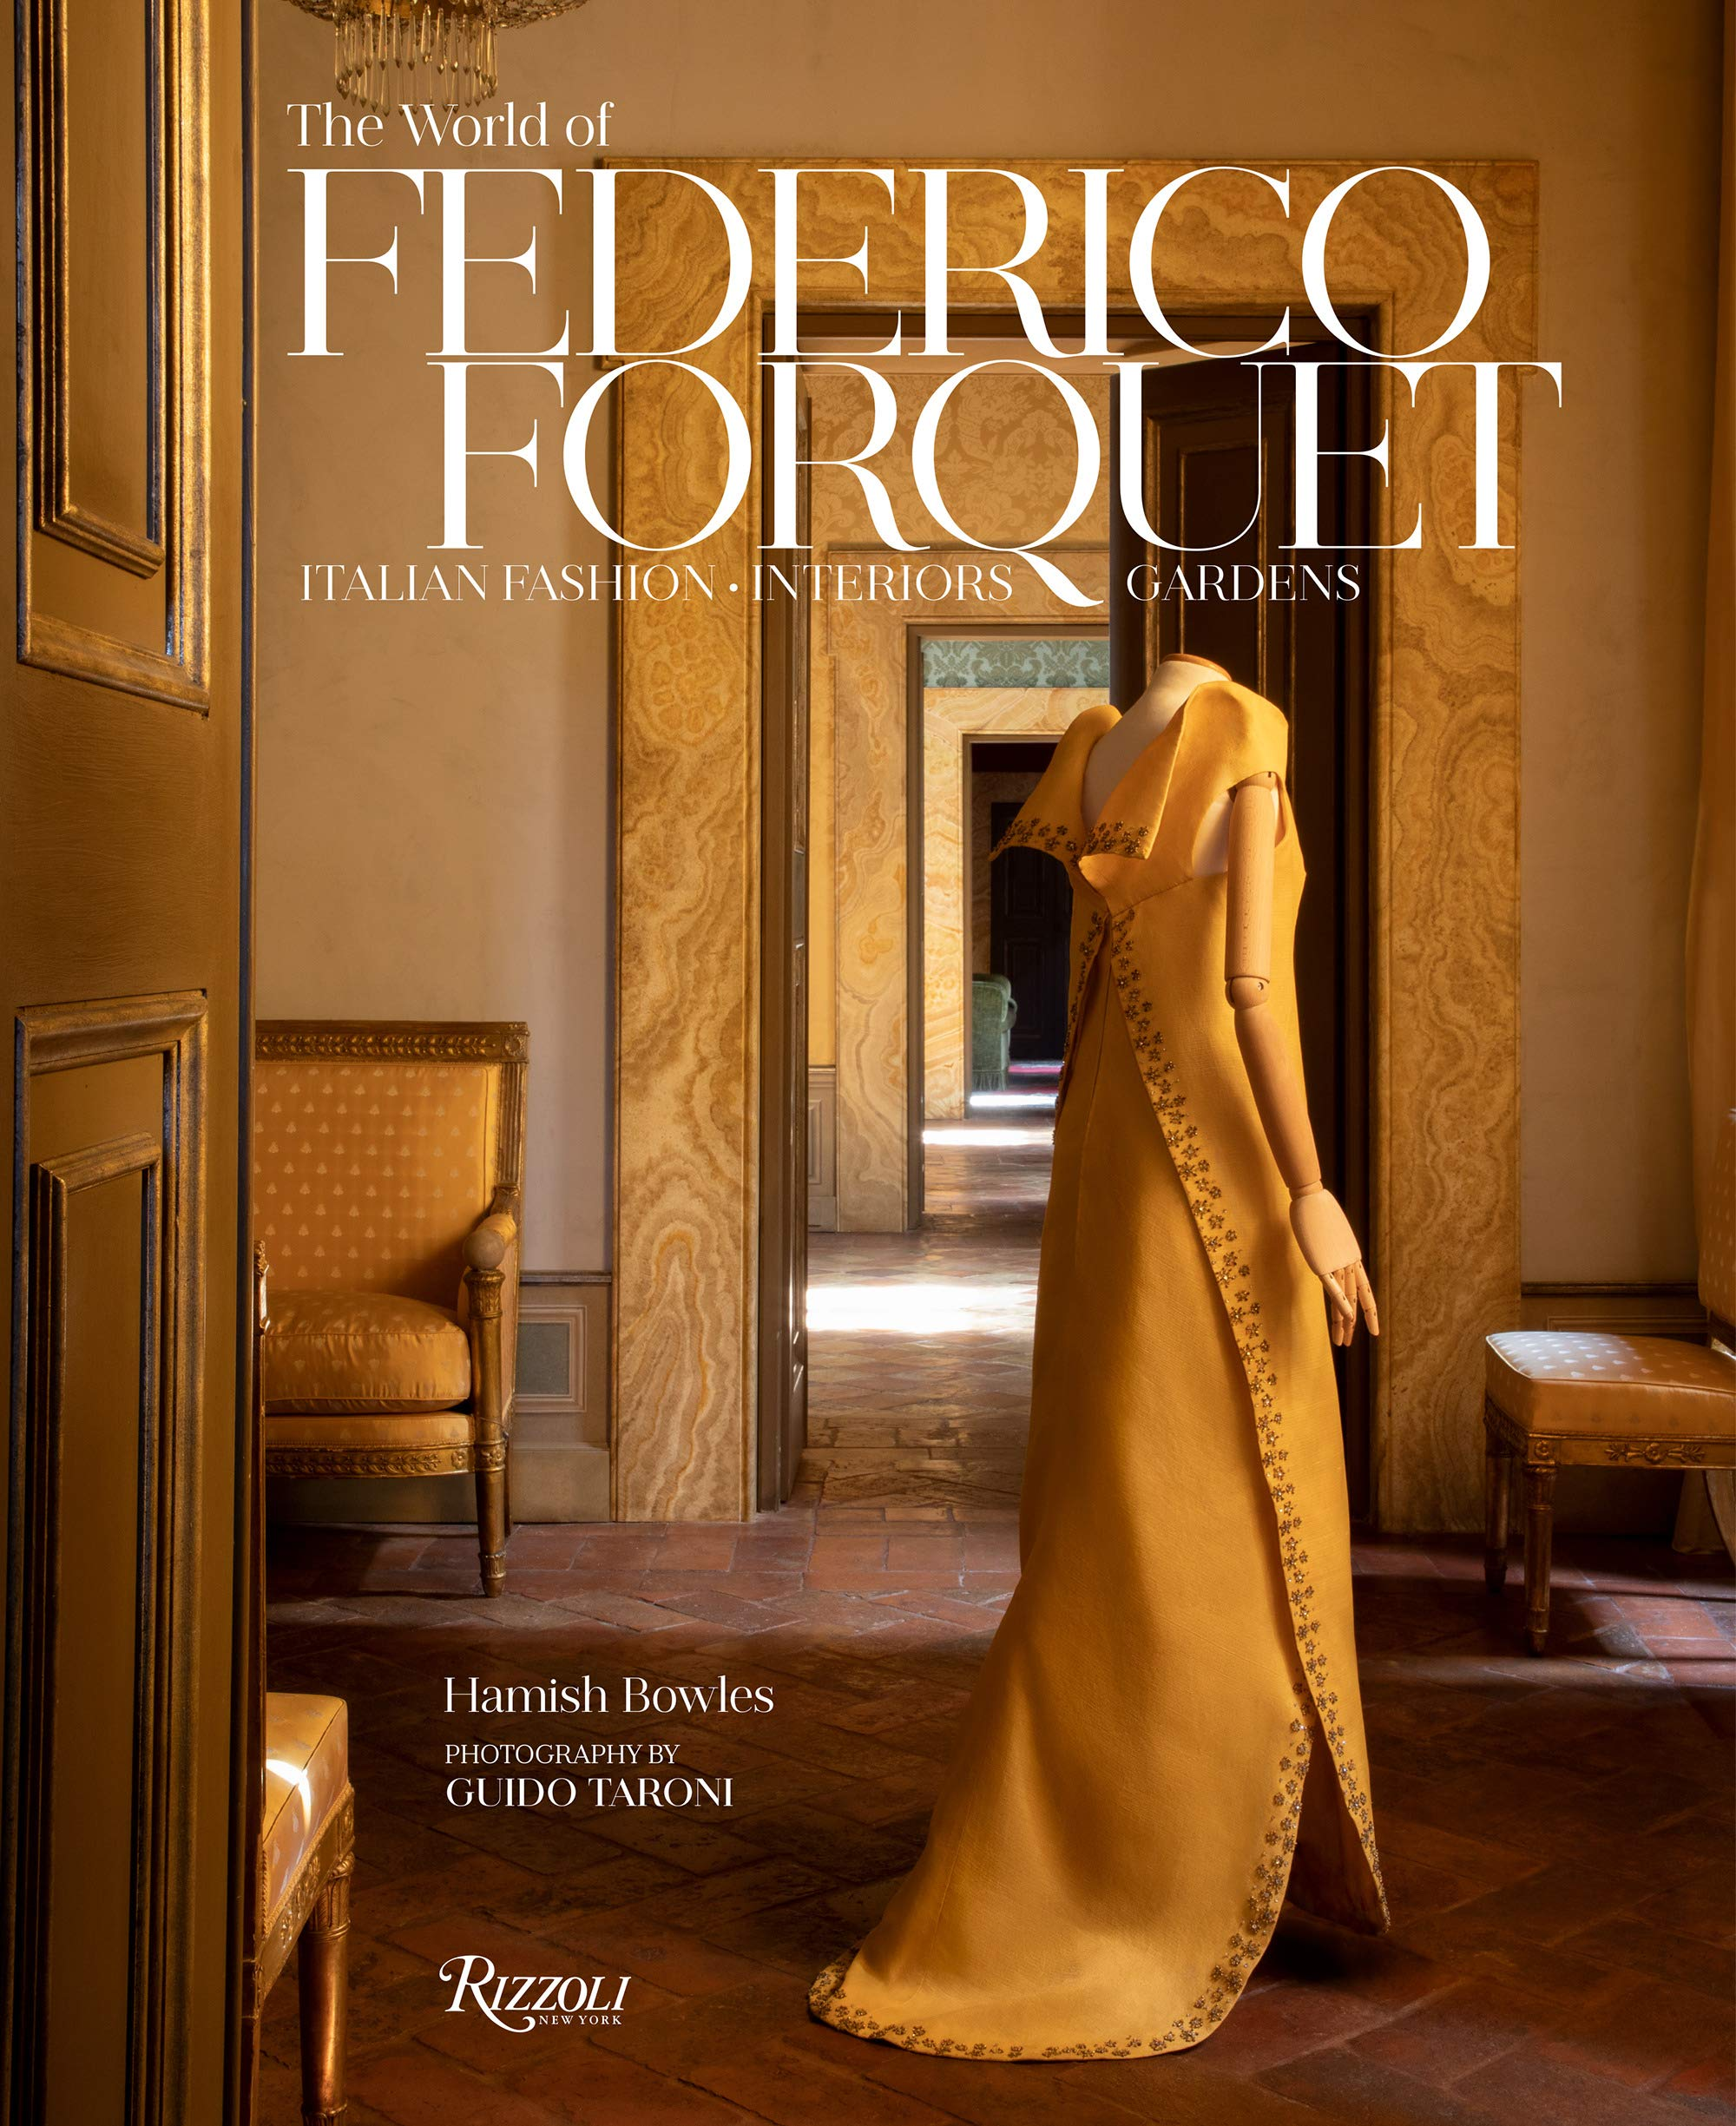 Guido Taroni - Book: The word of Federico Forrquet